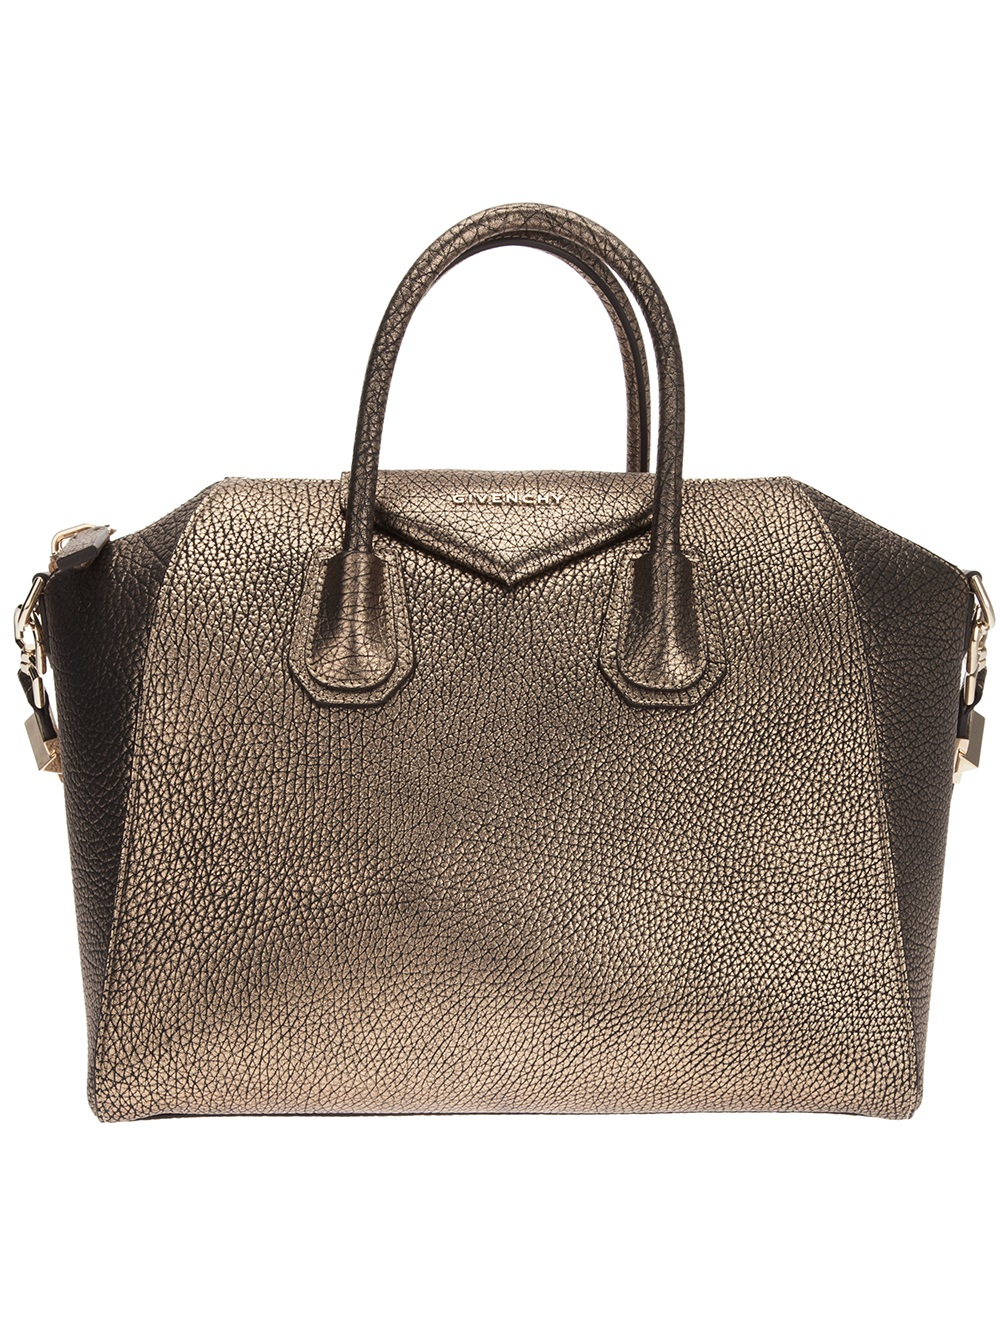 d9c71810d5 Lyst - Givenchy Antigona Tote in Metallic